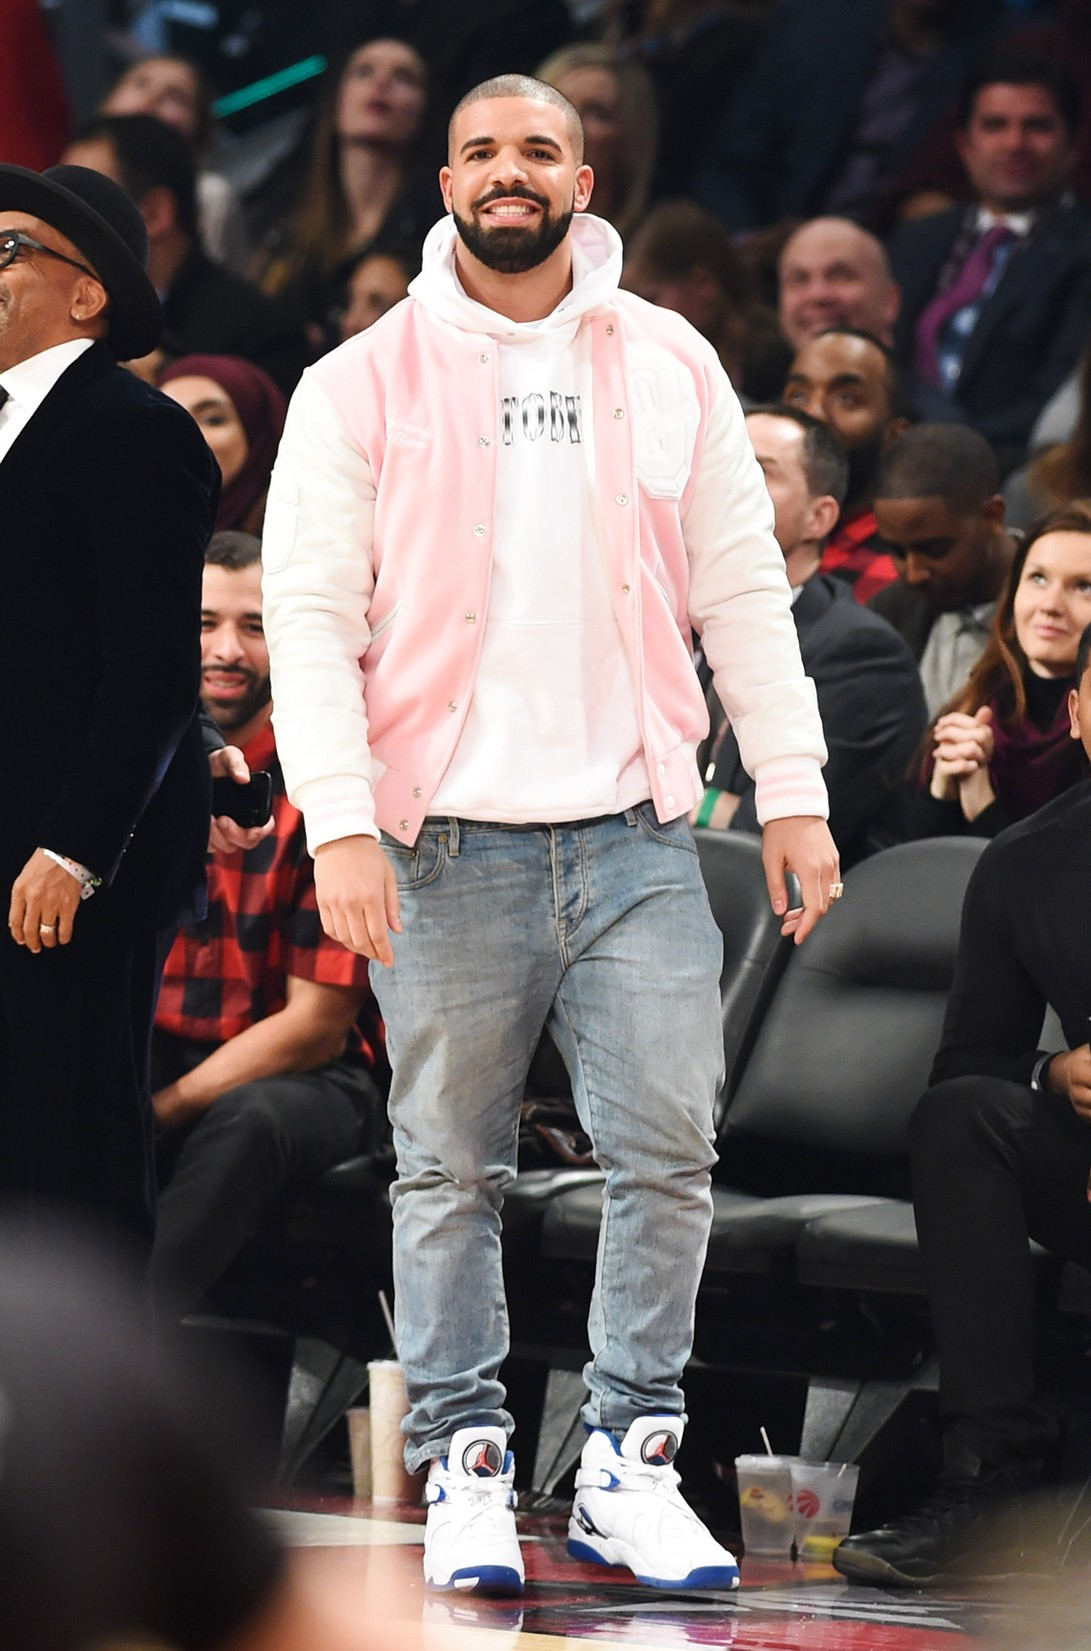 Drake attends the 2016 NBA All-Star Saturday Night at Air Canada Centre on Feb. 13, 2016 in Toronto, Canada.